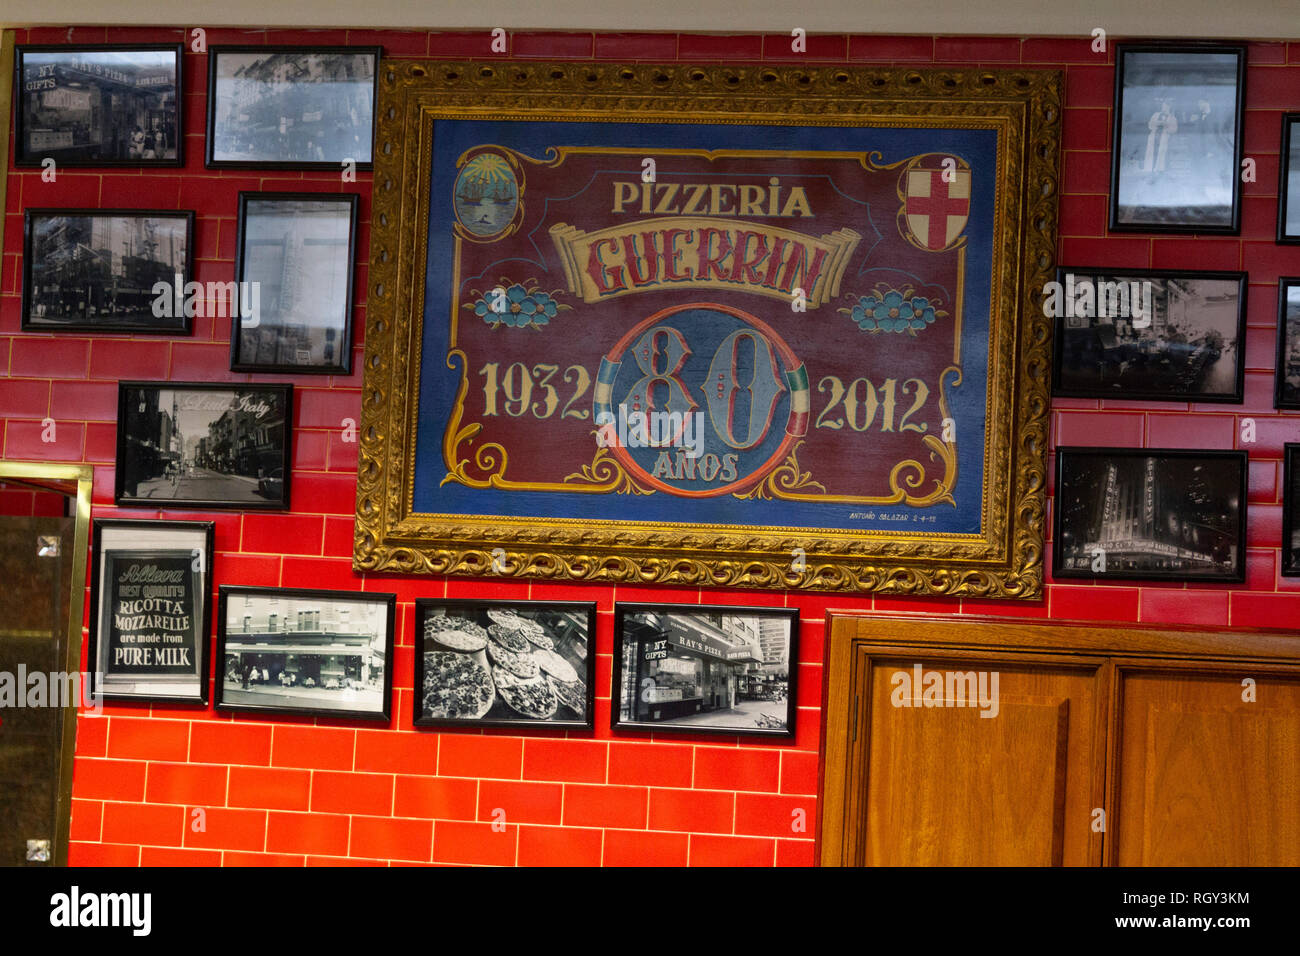 Buenos Aires State/Argentina 25/06/2014.Decoration at the Pizzeria ...